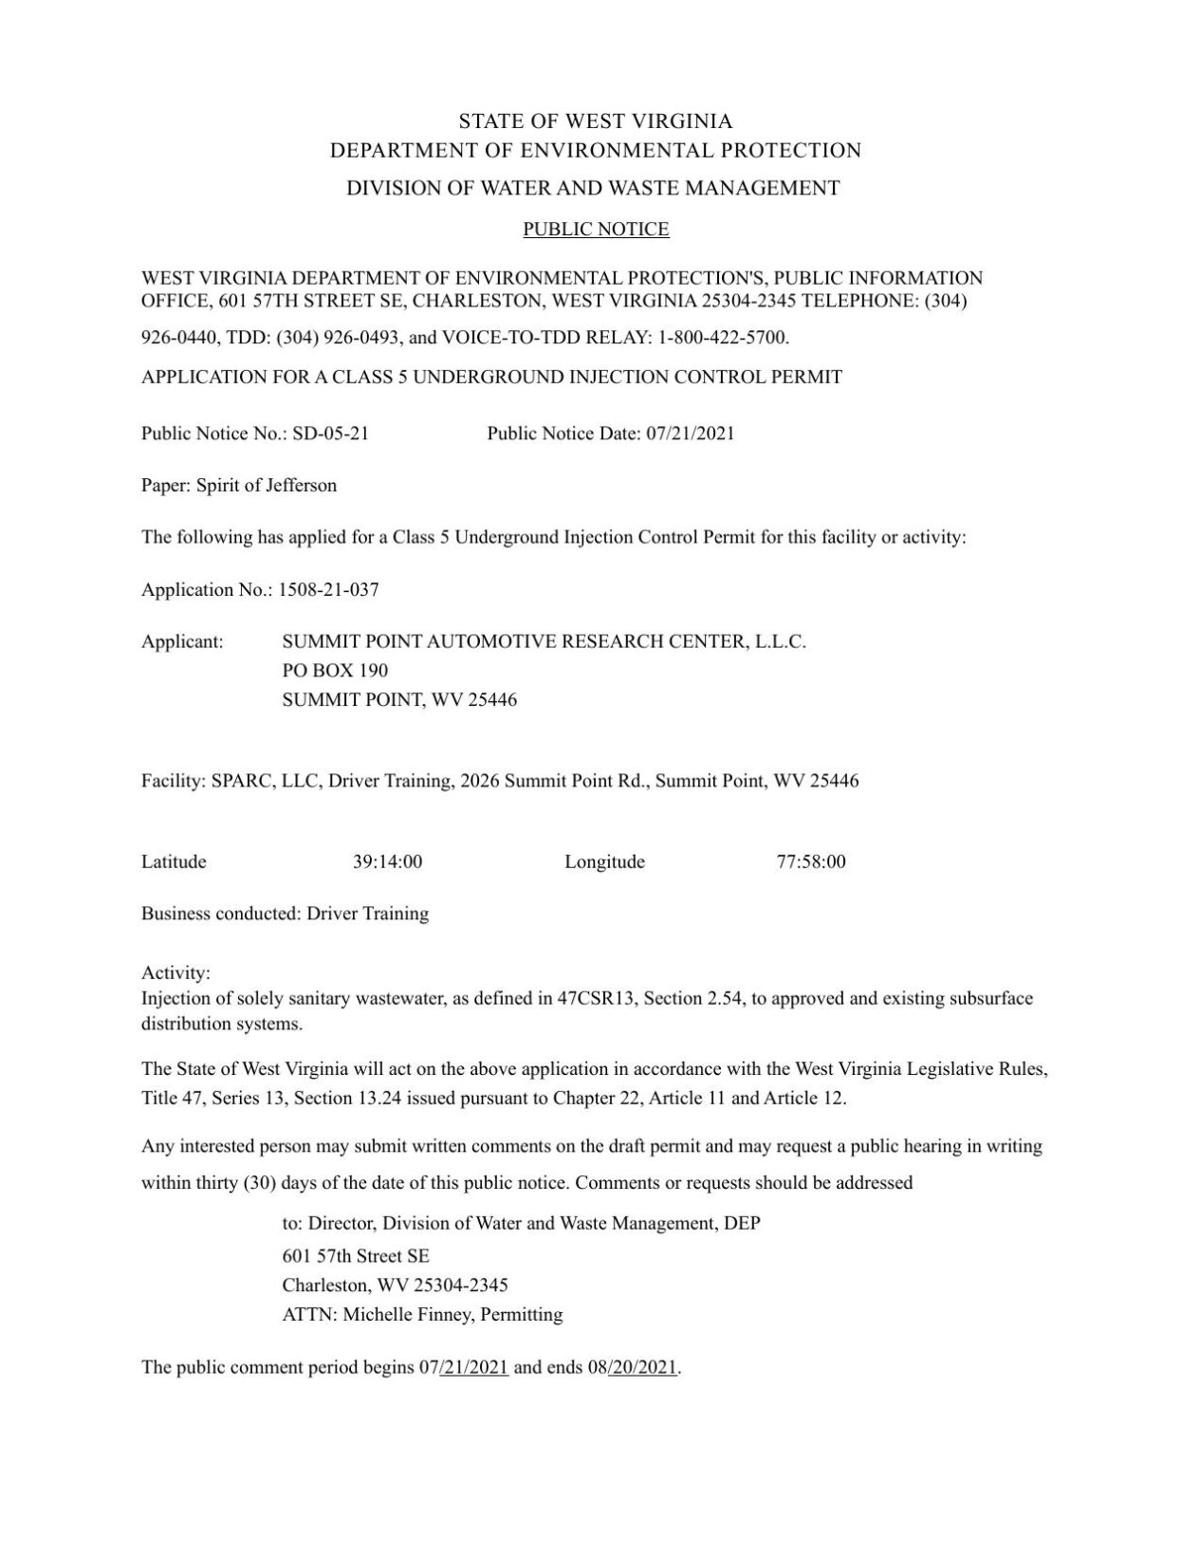 Public Notice 1 WV Dept of Environmental Protection